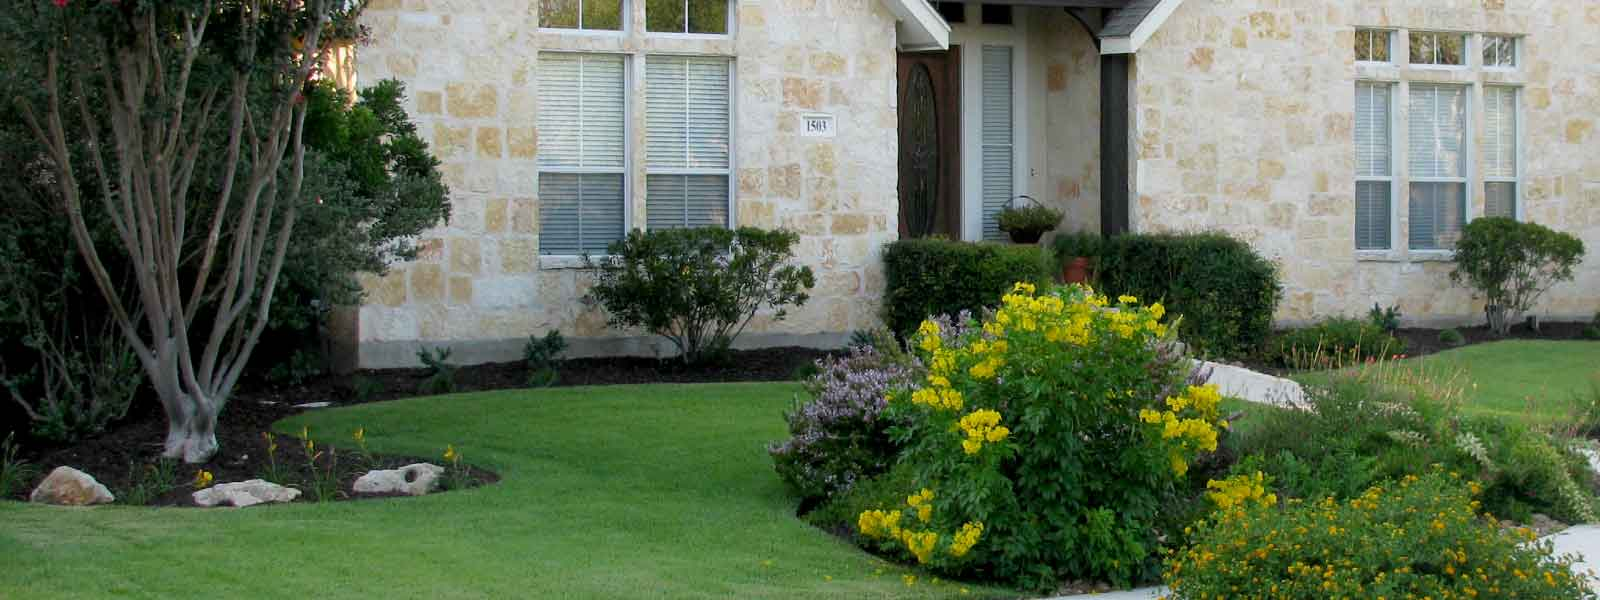 Residential San Antonio landscaping by C & K Lawn Services